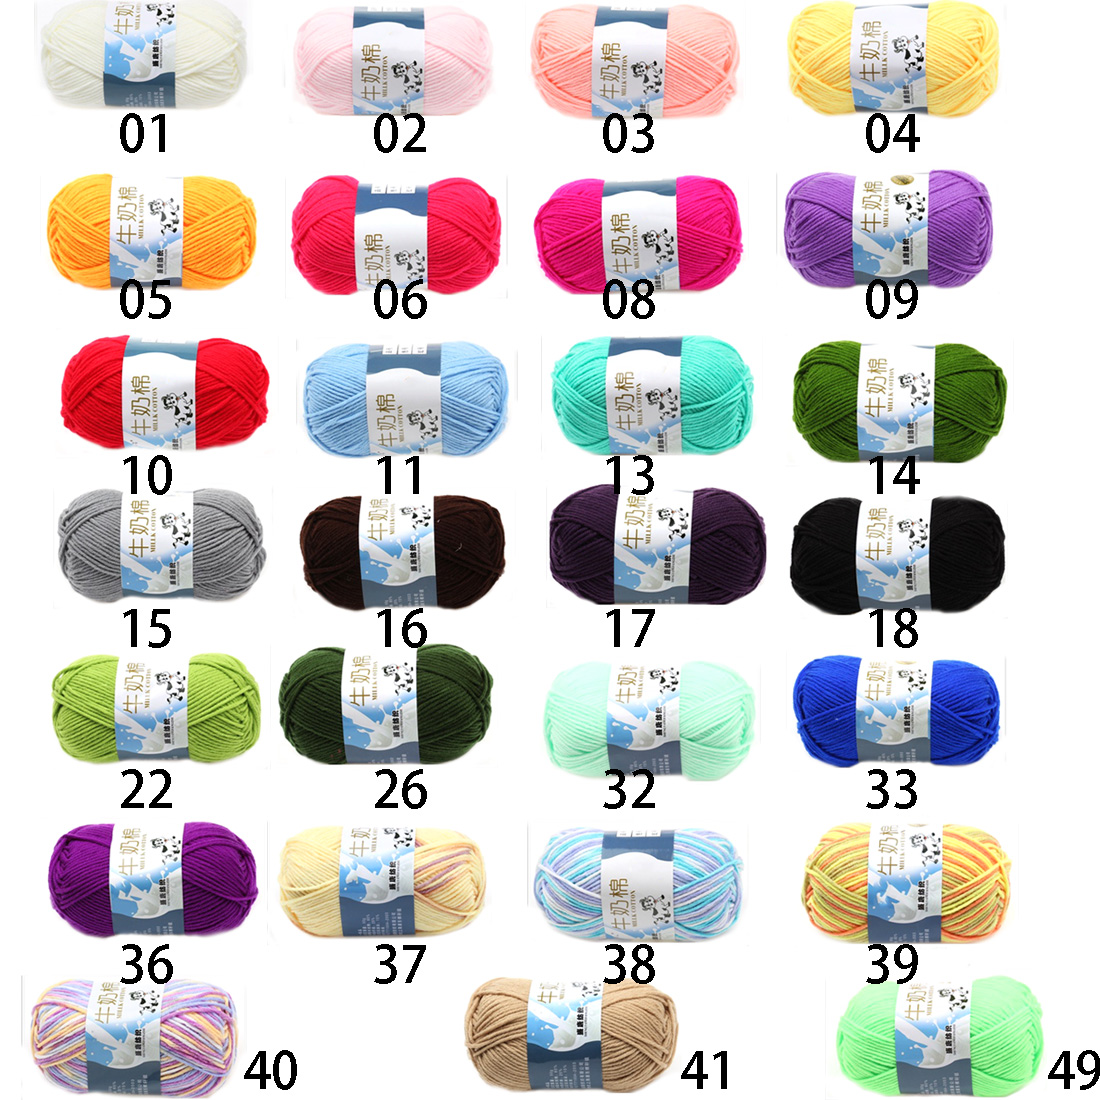 Best Sale 1pc Cotton Silk Knitting Yarn Soft Warm Baby Yarn for Hand Knitting Anti-Bacterial Eco-friendly Supplies 50g/pc